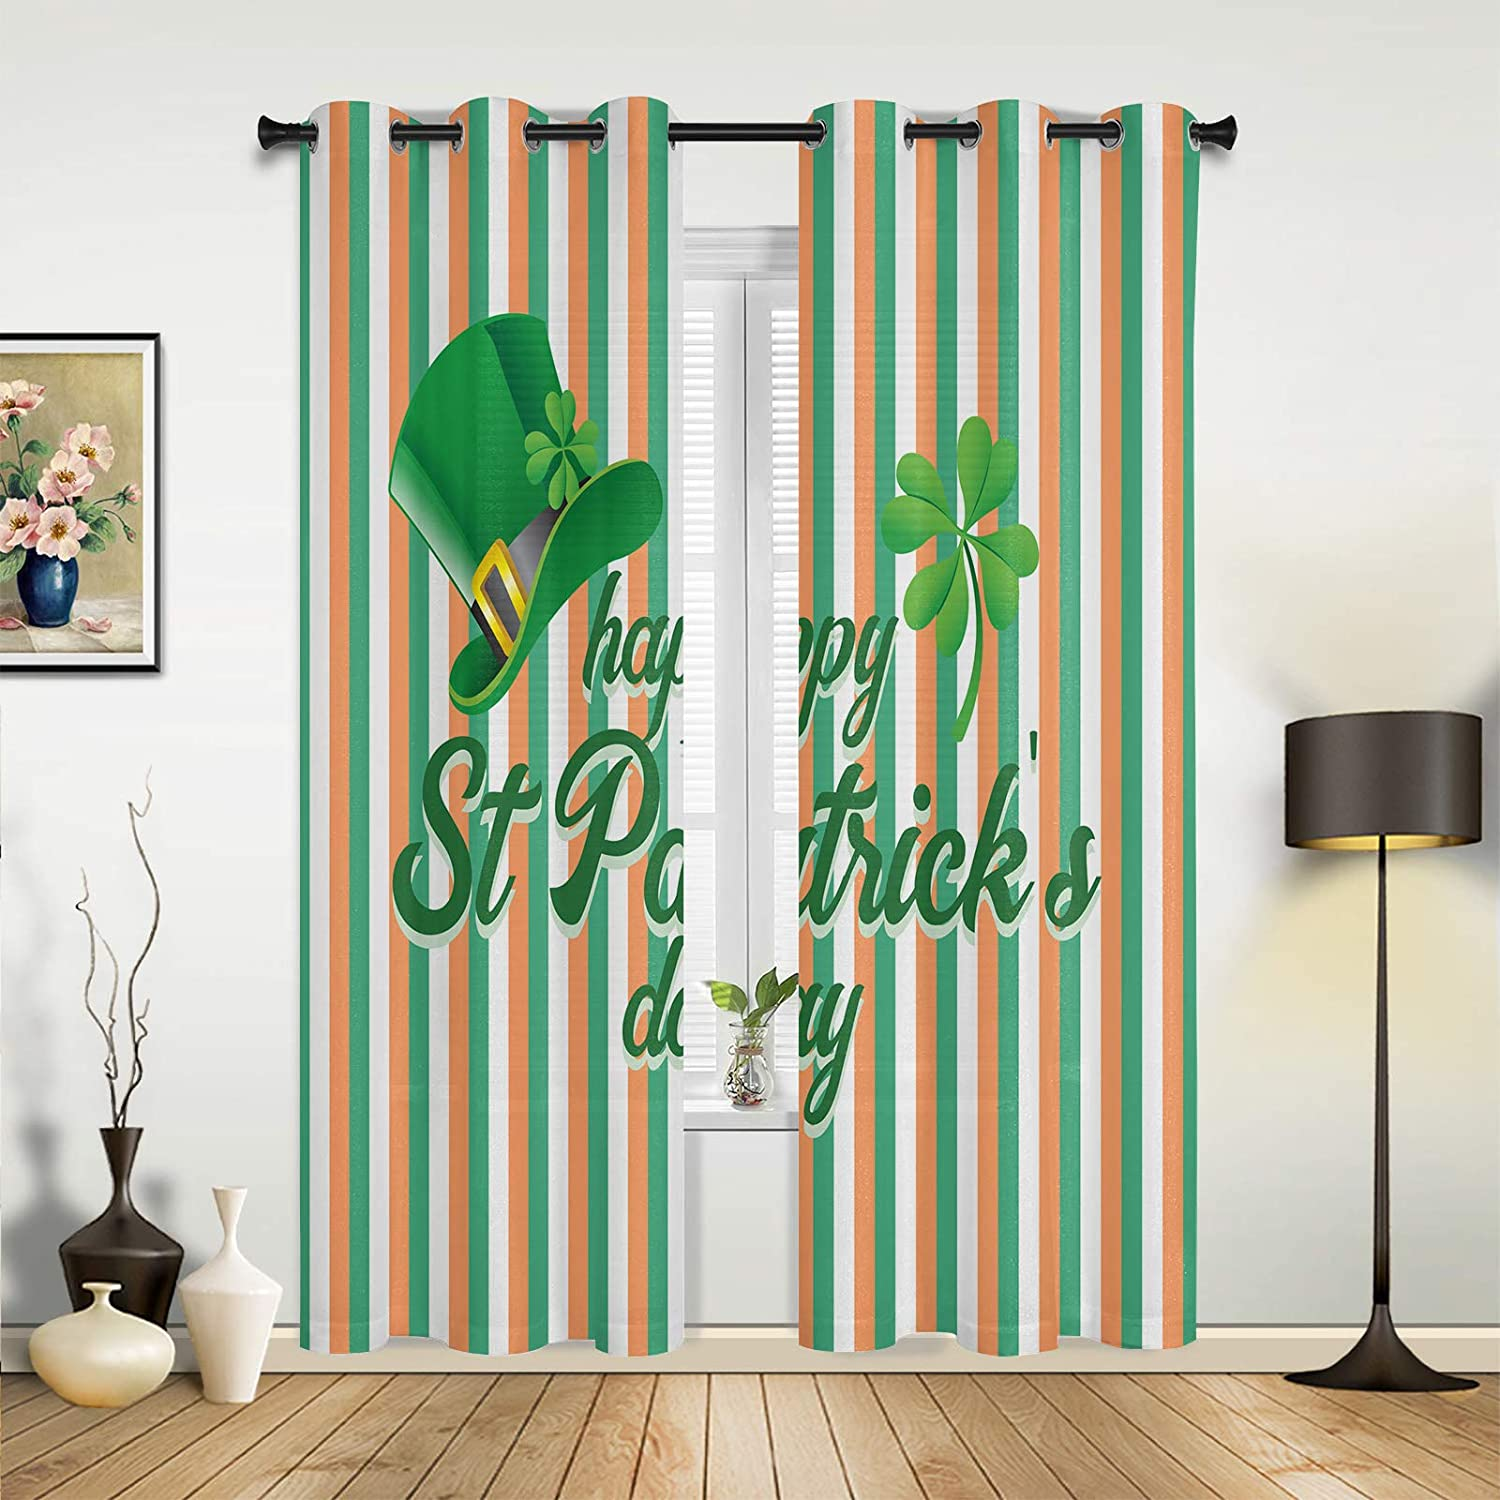 Window Sheer Curtains for Bedroom Patrick' New products world's highest Ranking TOP16 quality popular Living Room Happy St.